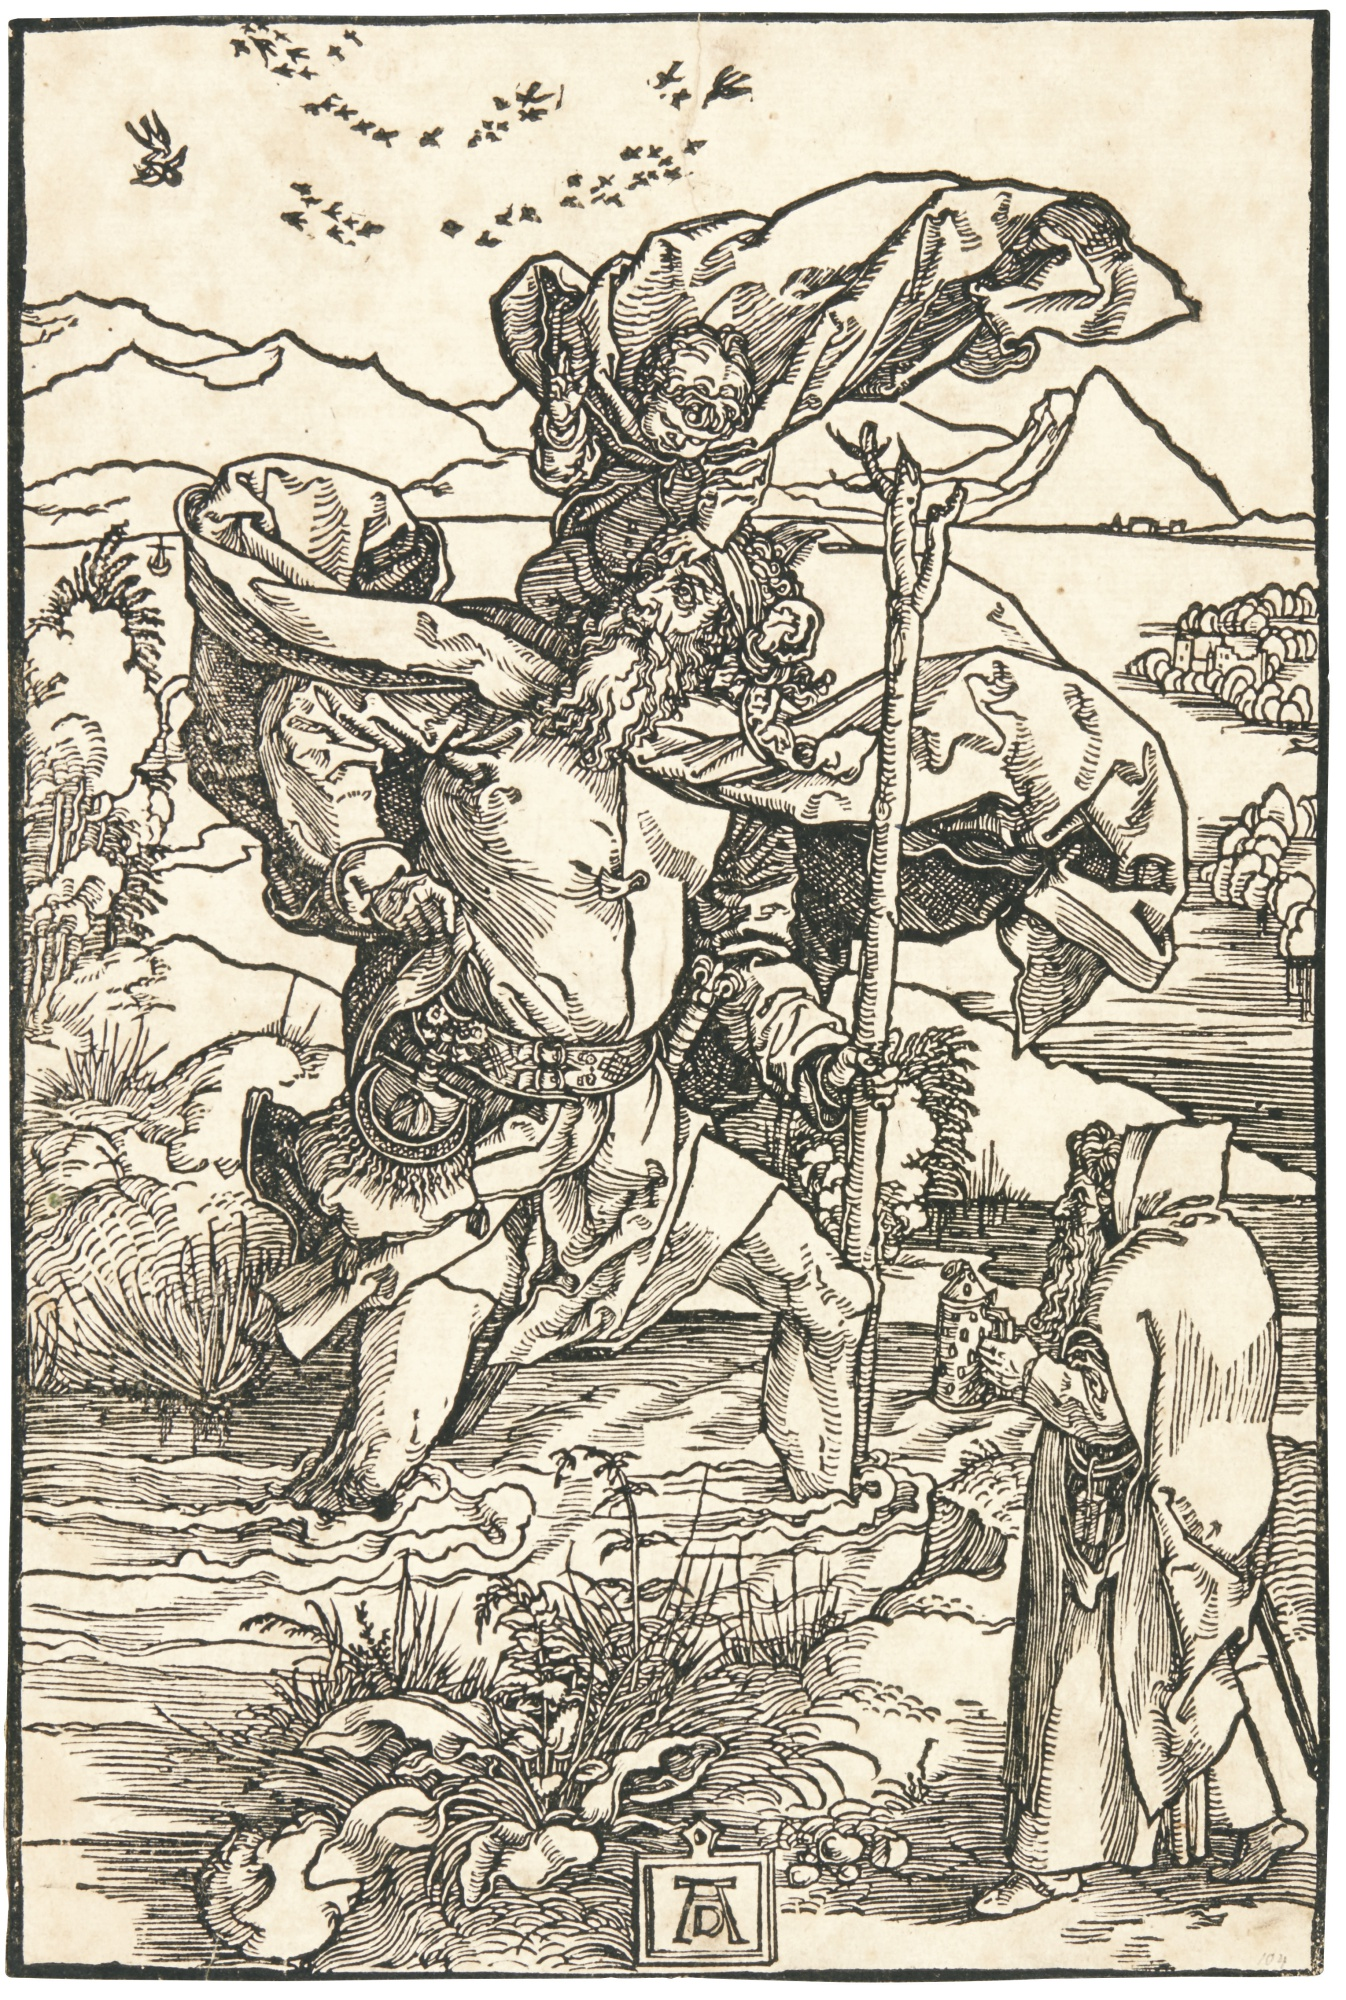 Albrecht Durer-The Last Supper; The Holy Family With Joachim And Anna Under A Tree; Saint Christopher With The Flight Of Birds; And Saints Nicholas, Ulrich And Erasmus (B. 53, 96, 104, 118; M., Holl. 184, 215, 222, 233)-1523